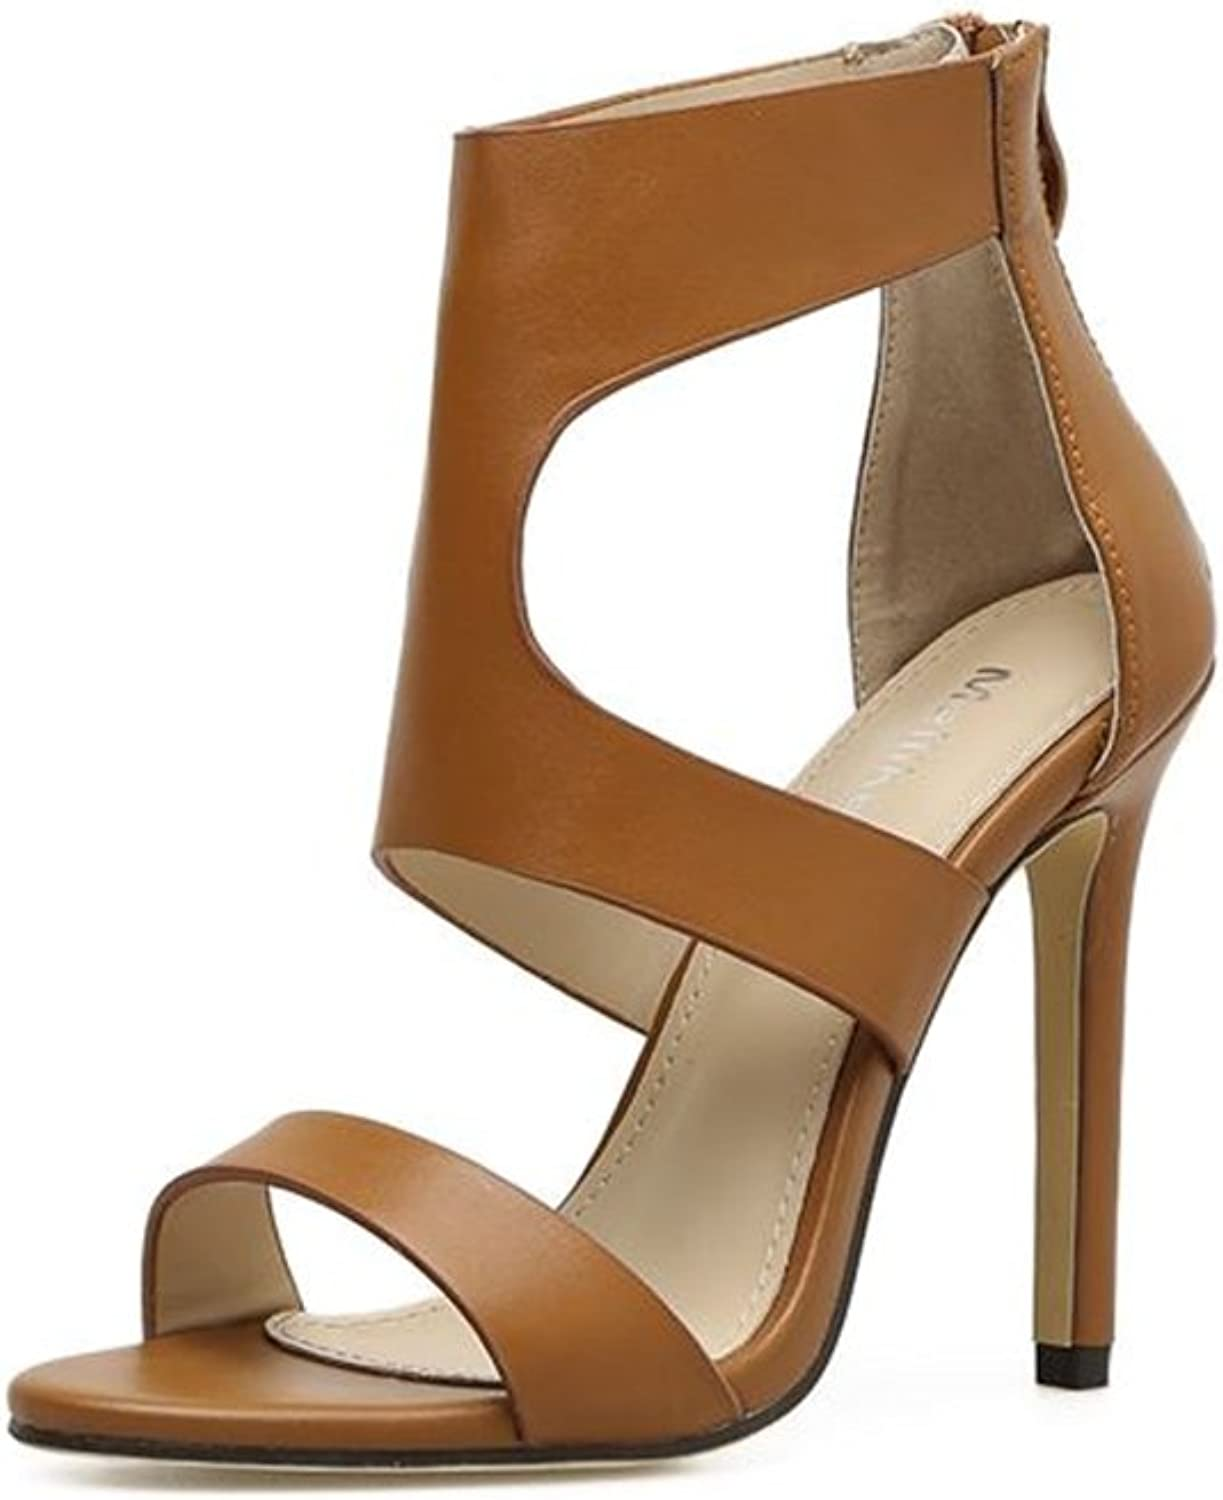 Smart.A Women Ankle Heels Sexy Peep Toe Platform Pumps shoes with Zip